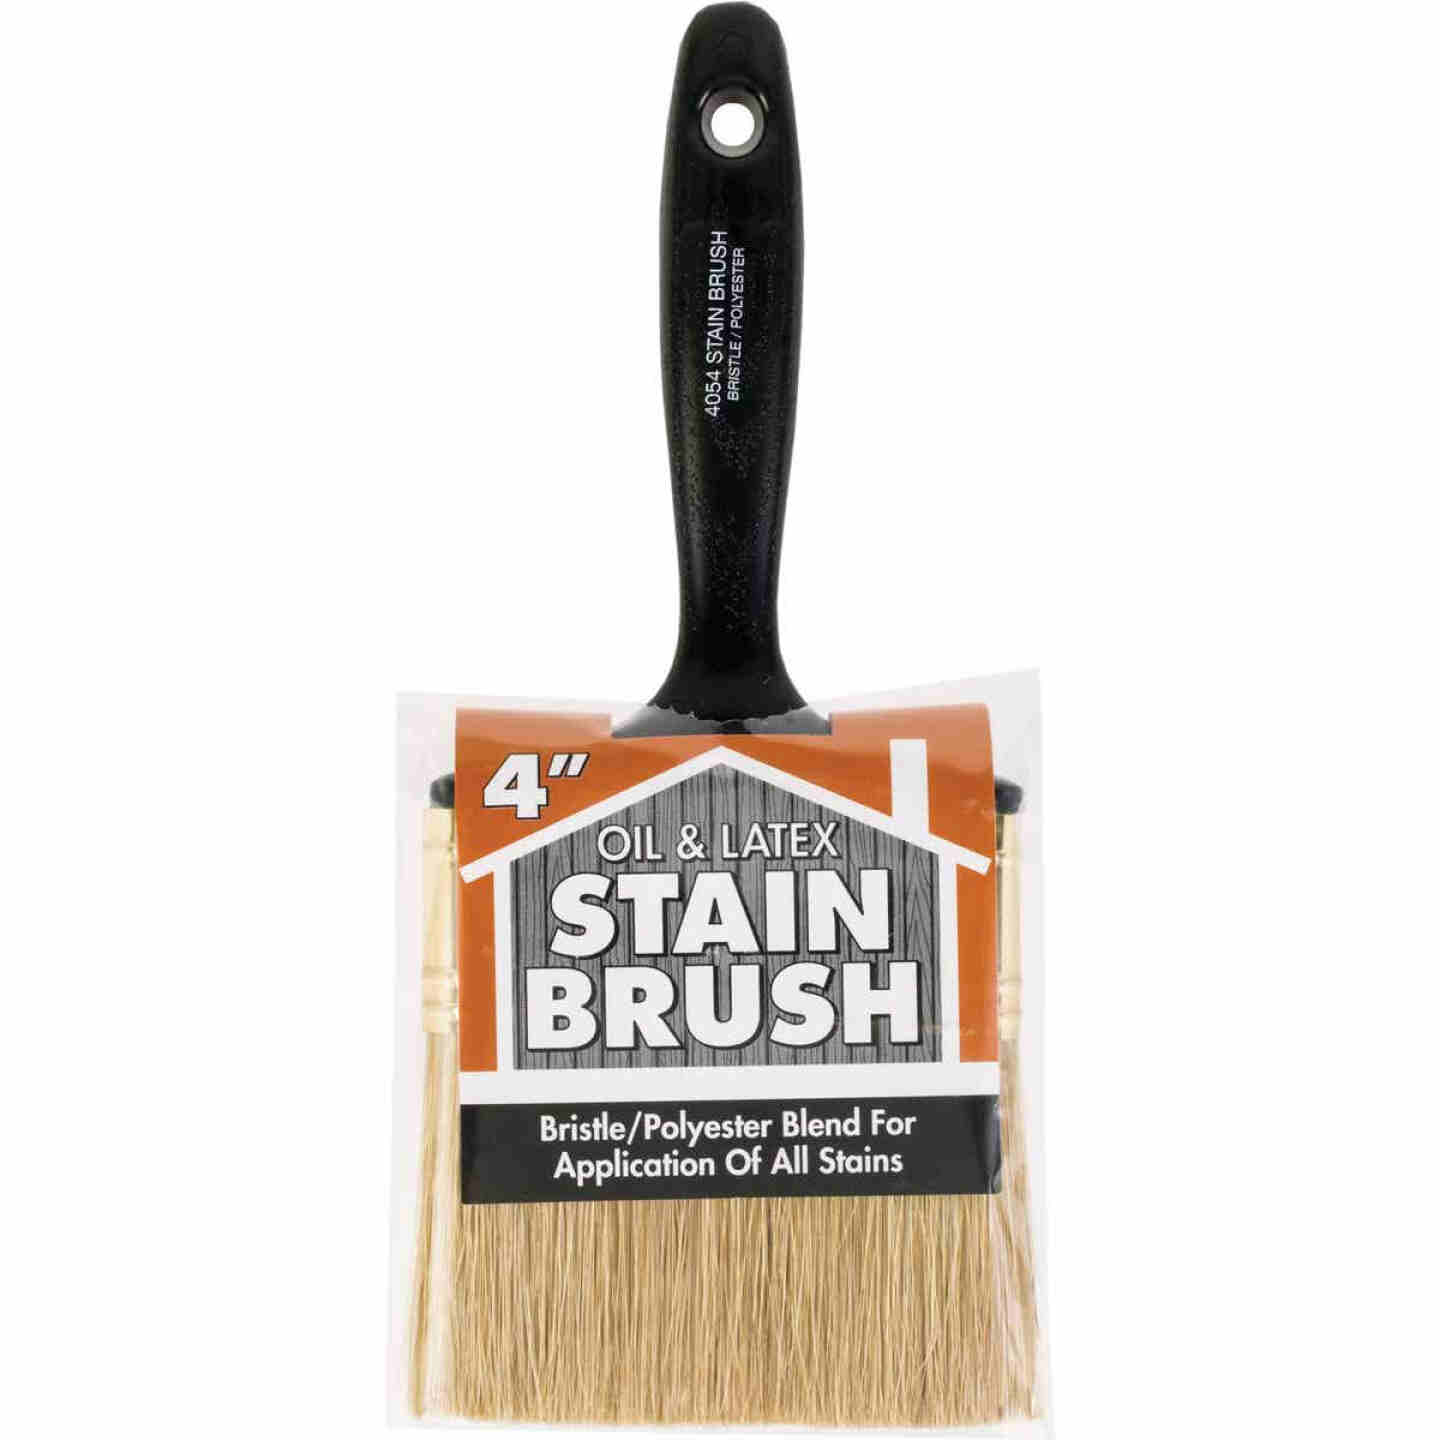 Wooster 4 In. Oil & Latex Stain Brush Image 1